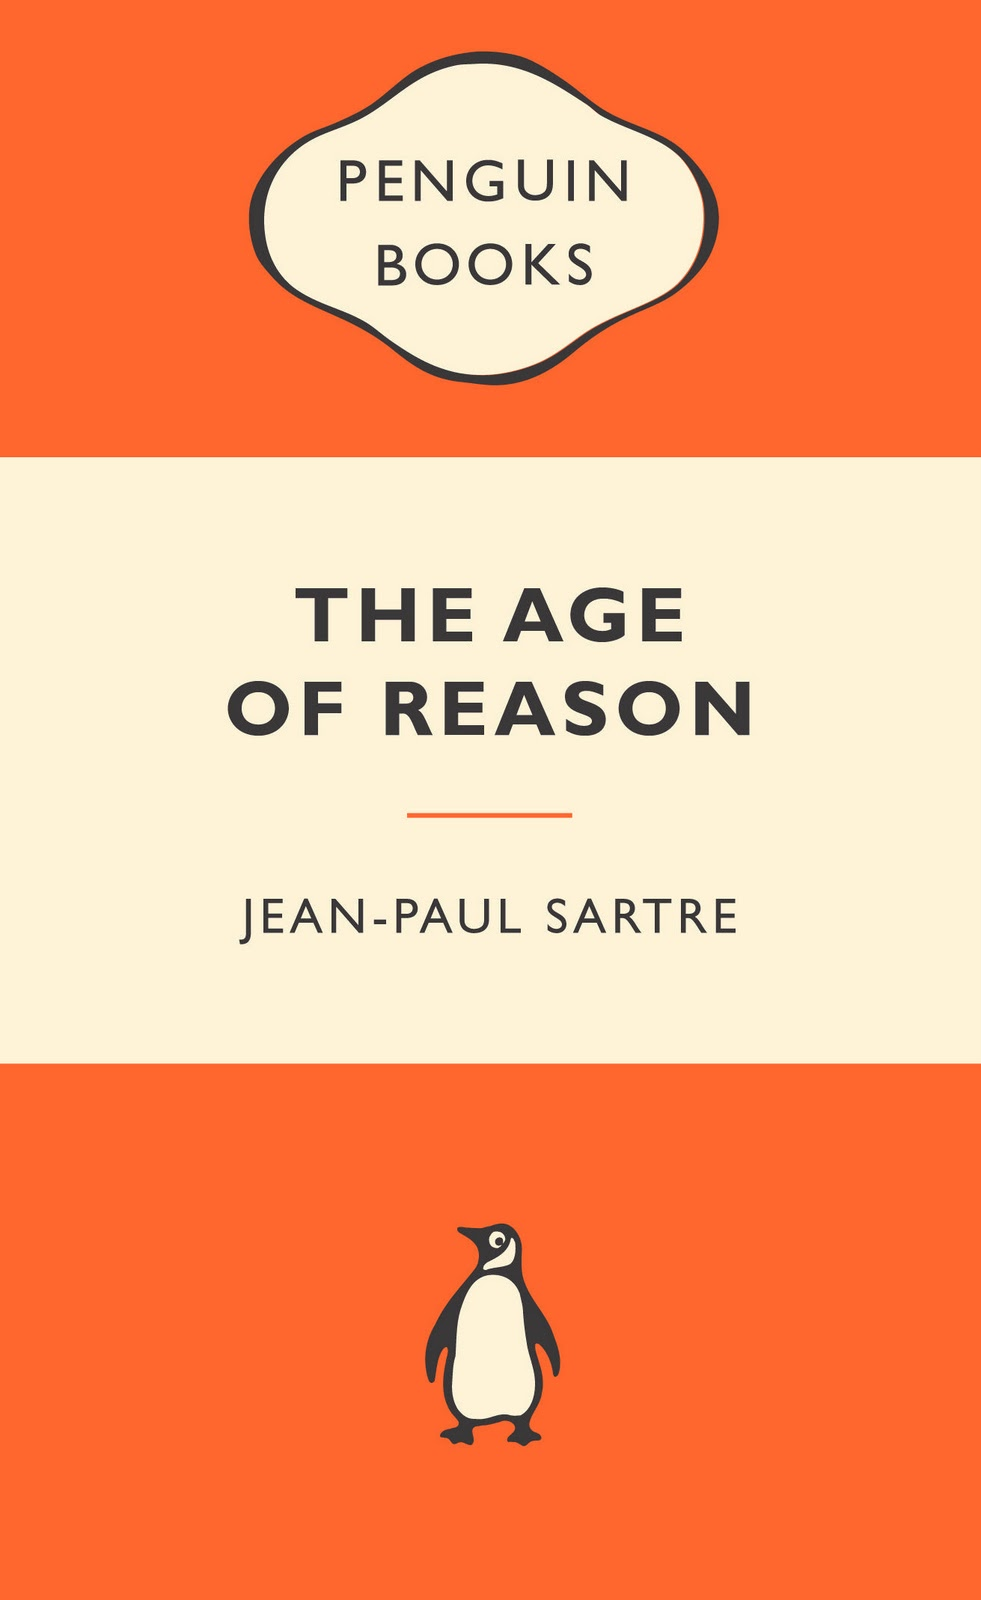 the age of reason to the The history of reason in the age of madness revolves around three axes: the  foucauldian critical-historical method, its relationship with enlightenment.